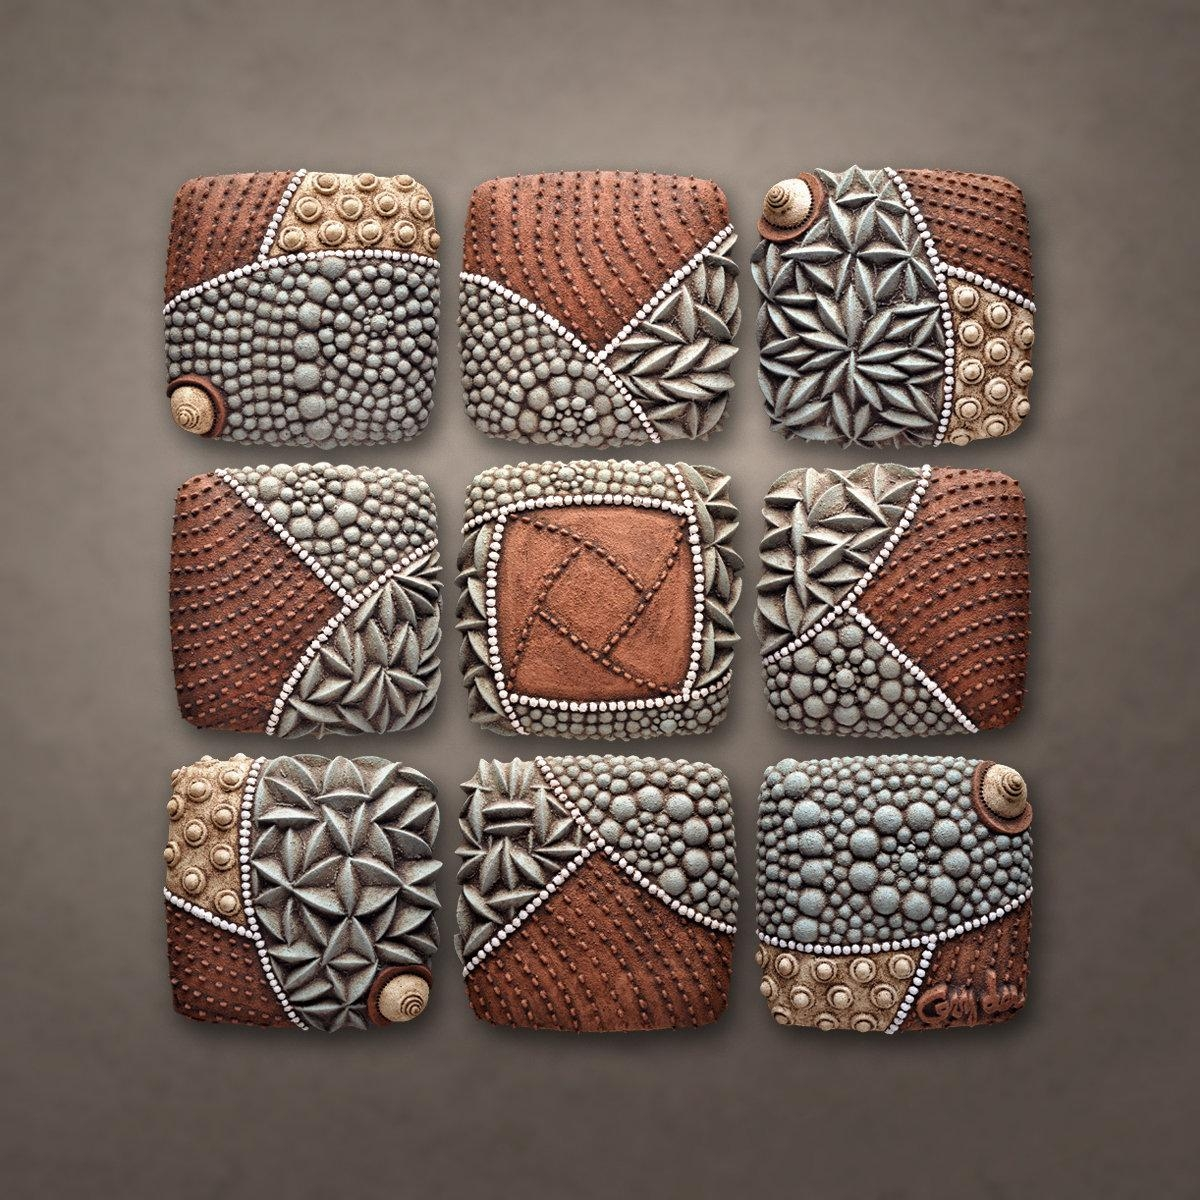 Pinwheel Patternchristopher Gryder (Ceramic Wall Sculpture Intended For Large Ceramic Wall Art (View 2 of 20)